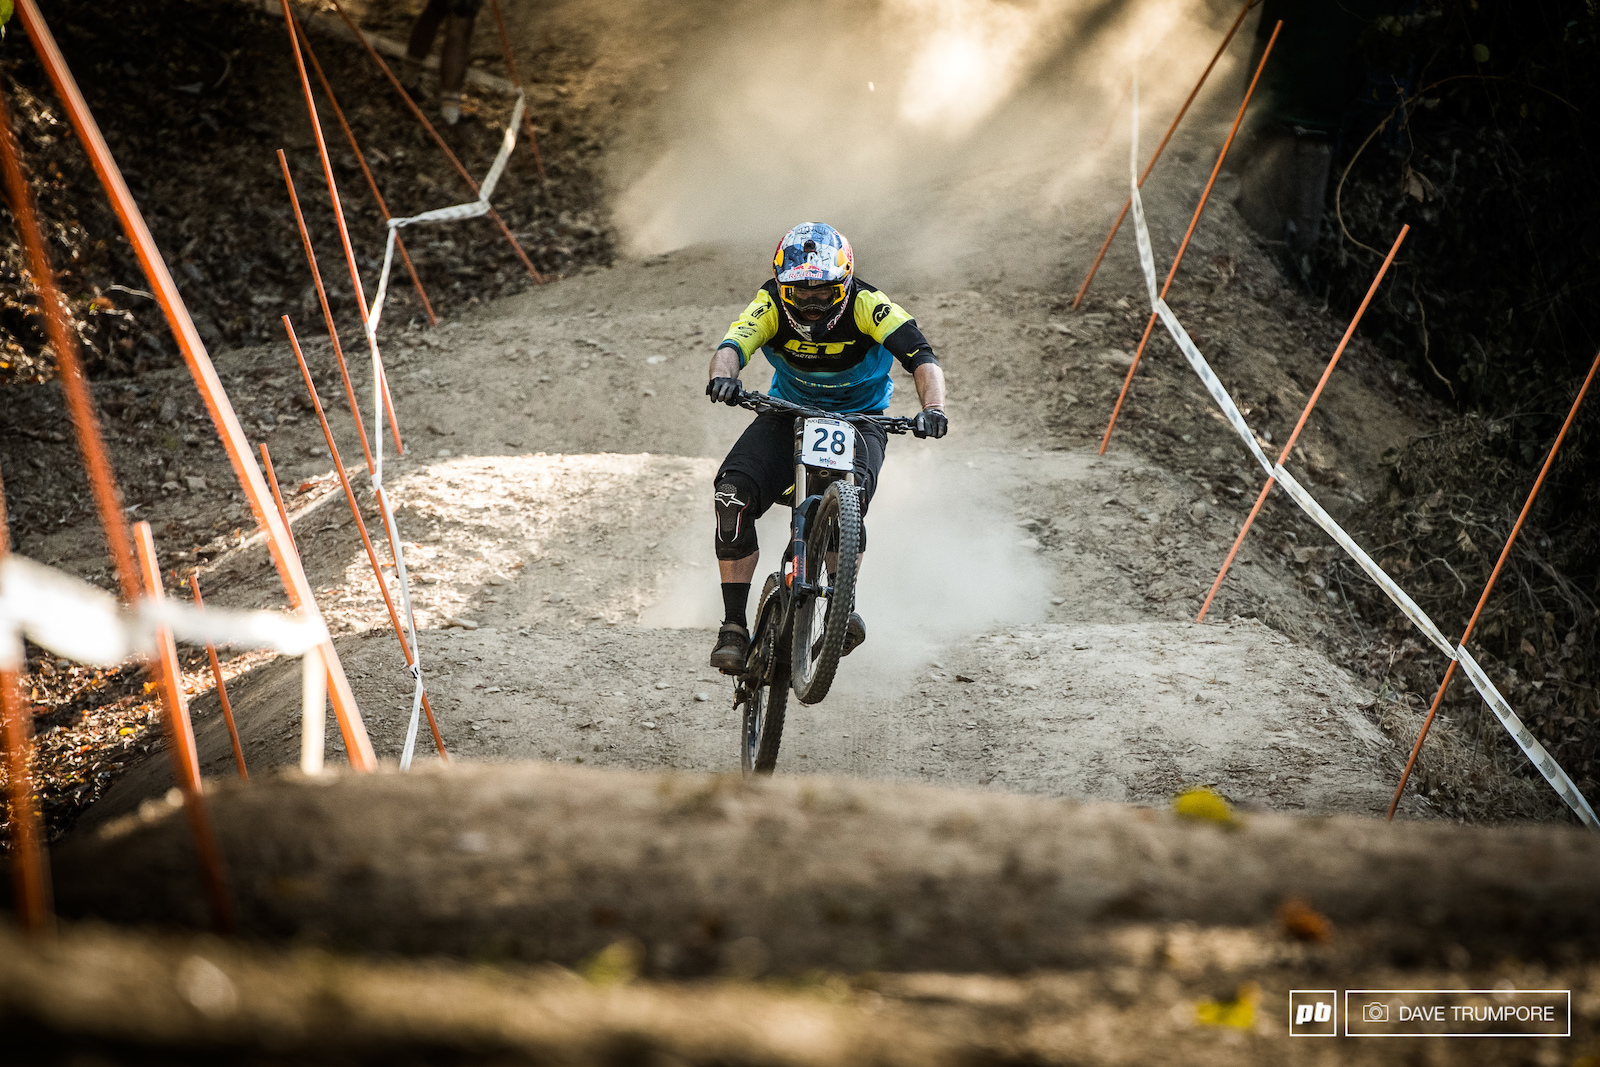 The Bulldog smashing the whoops halfway down the track.